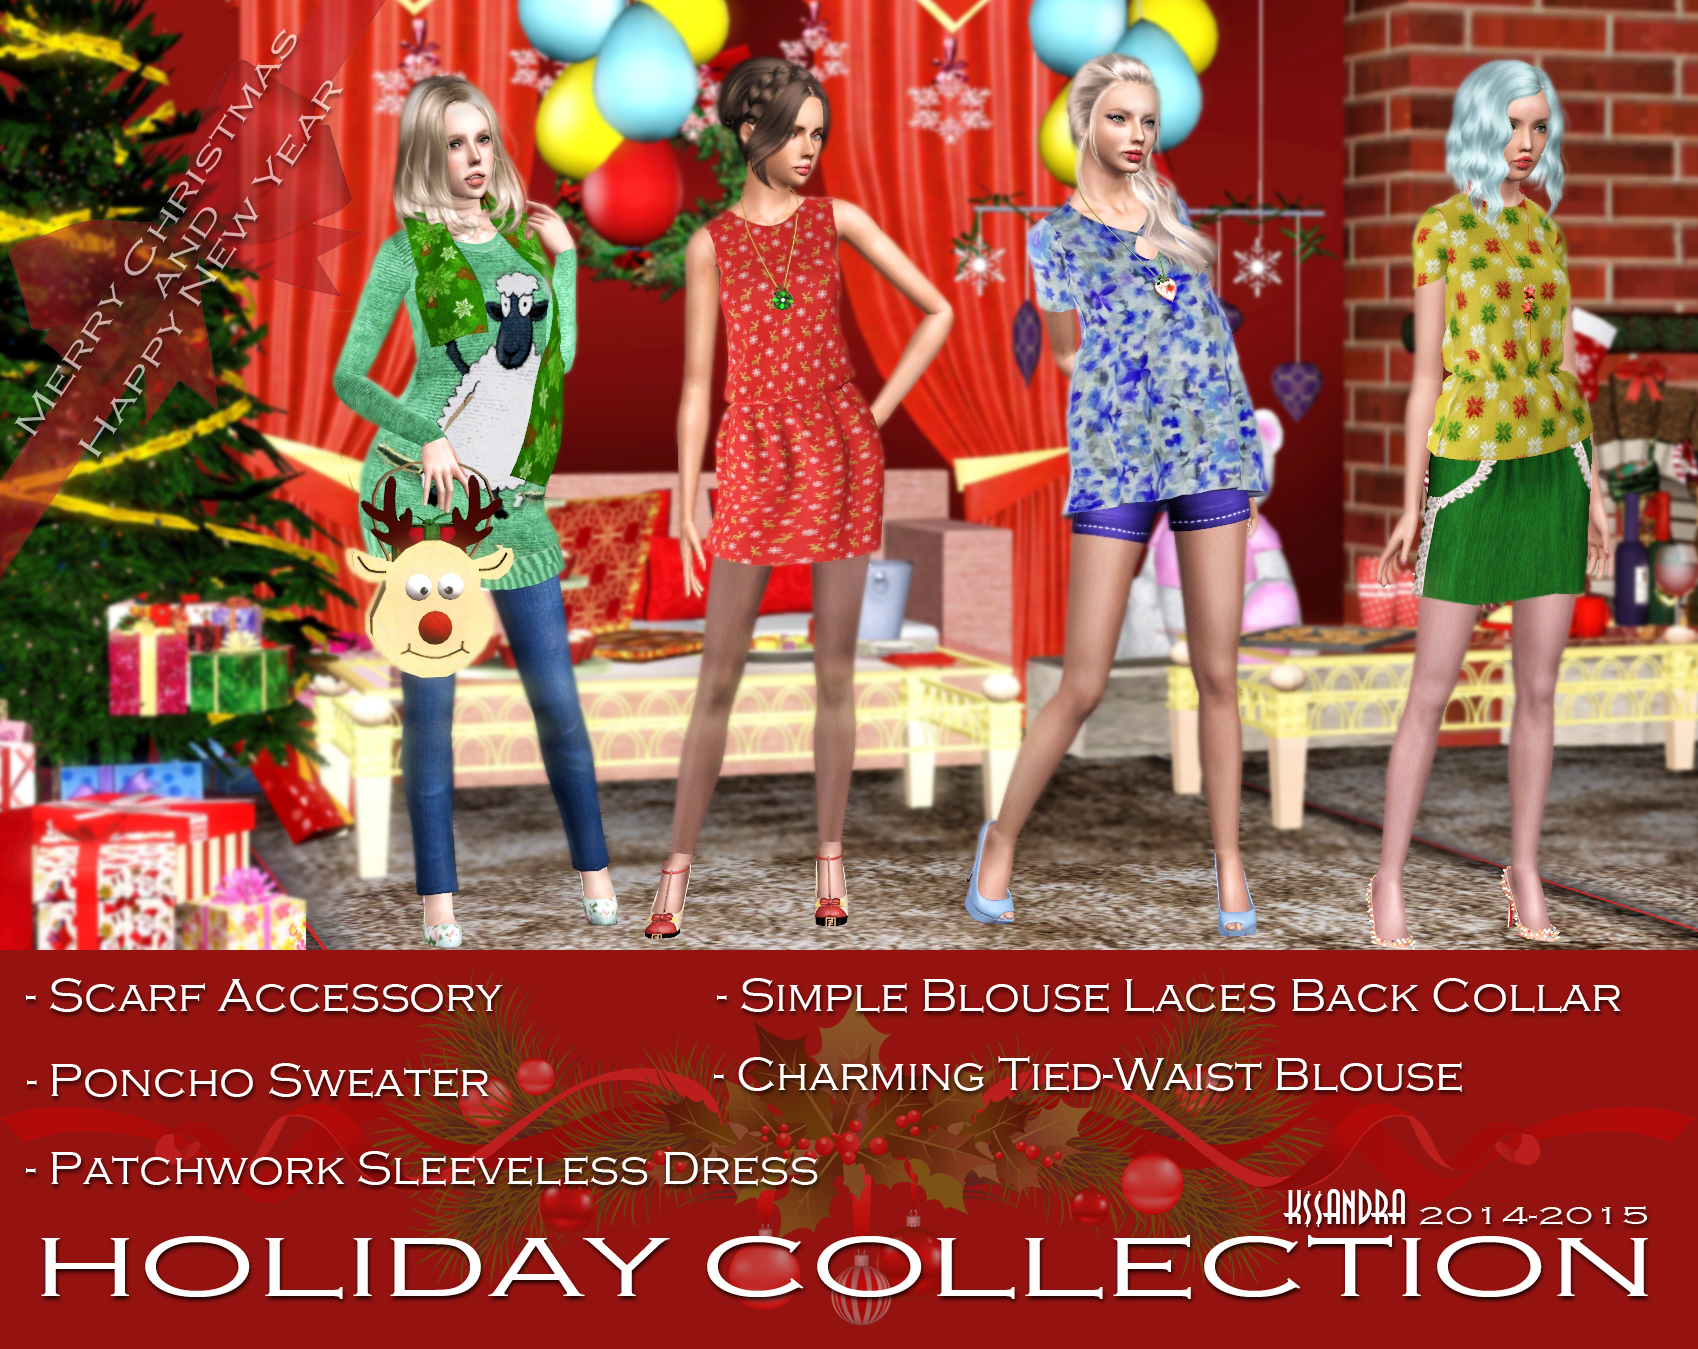 HOLIDAY collection от К$$андры